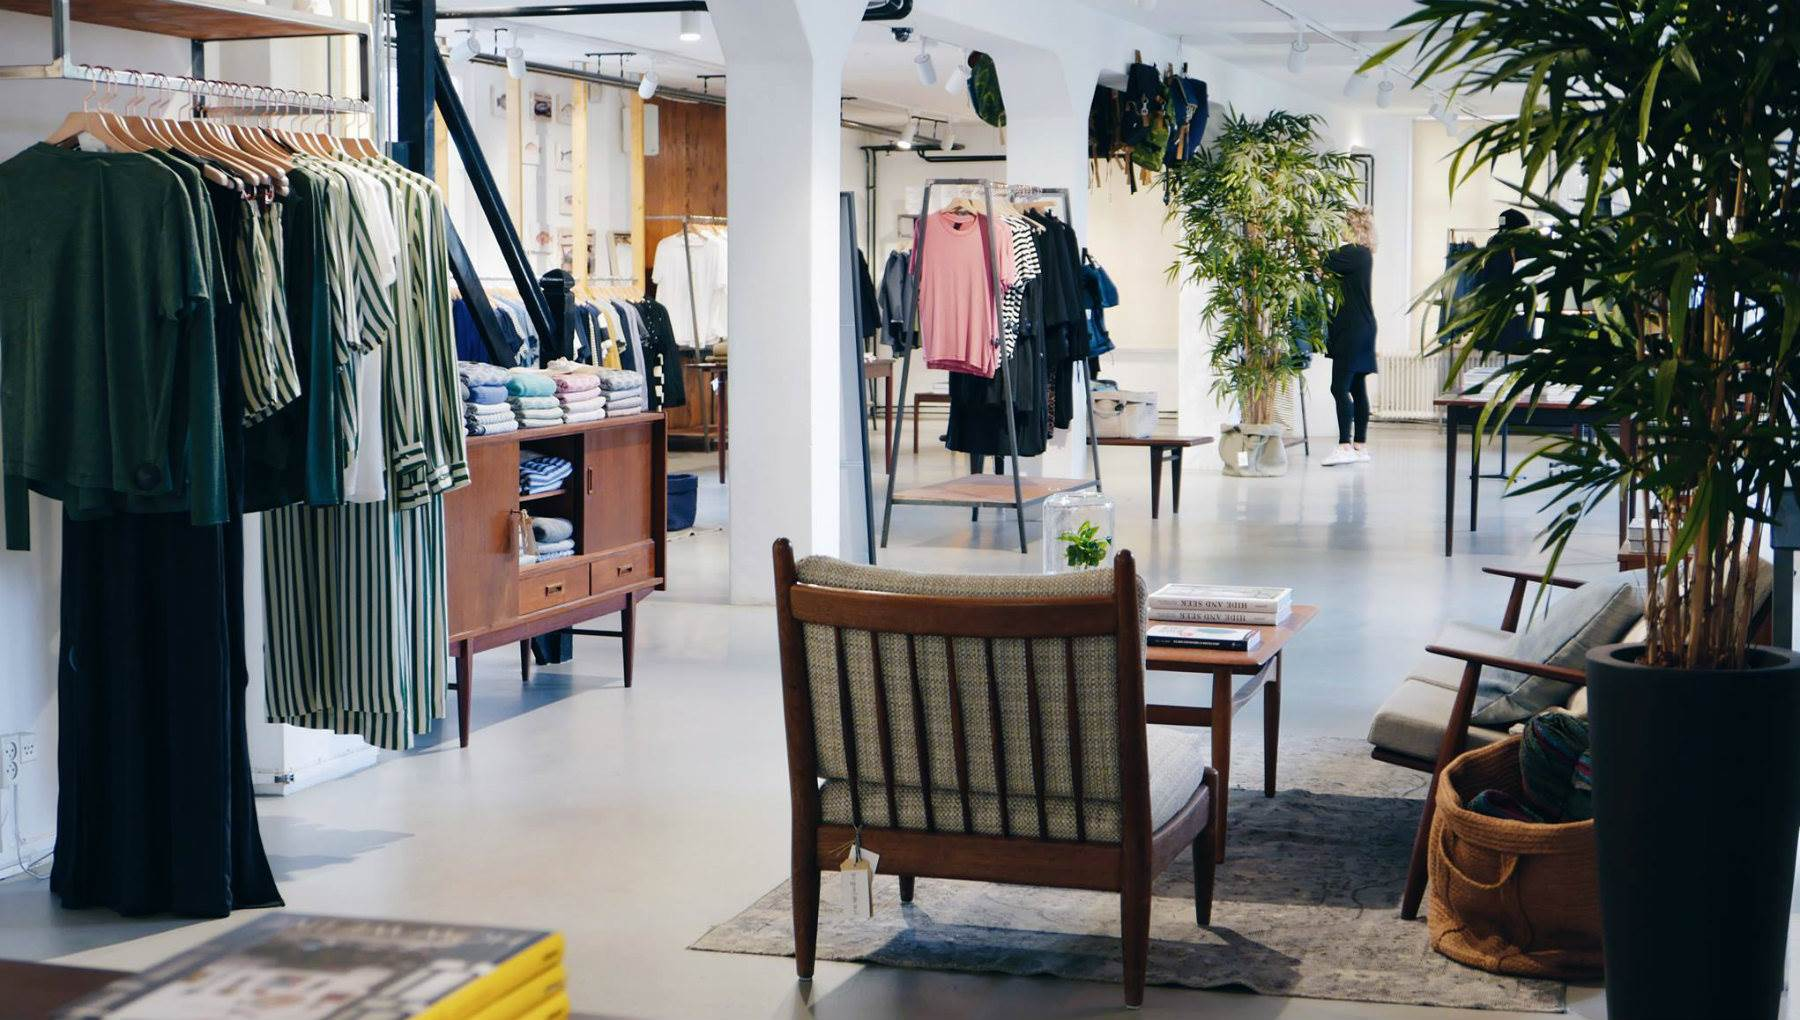 Online Interieur Shop Top 10 Concept Stores In Amsterdam I Amsterdam